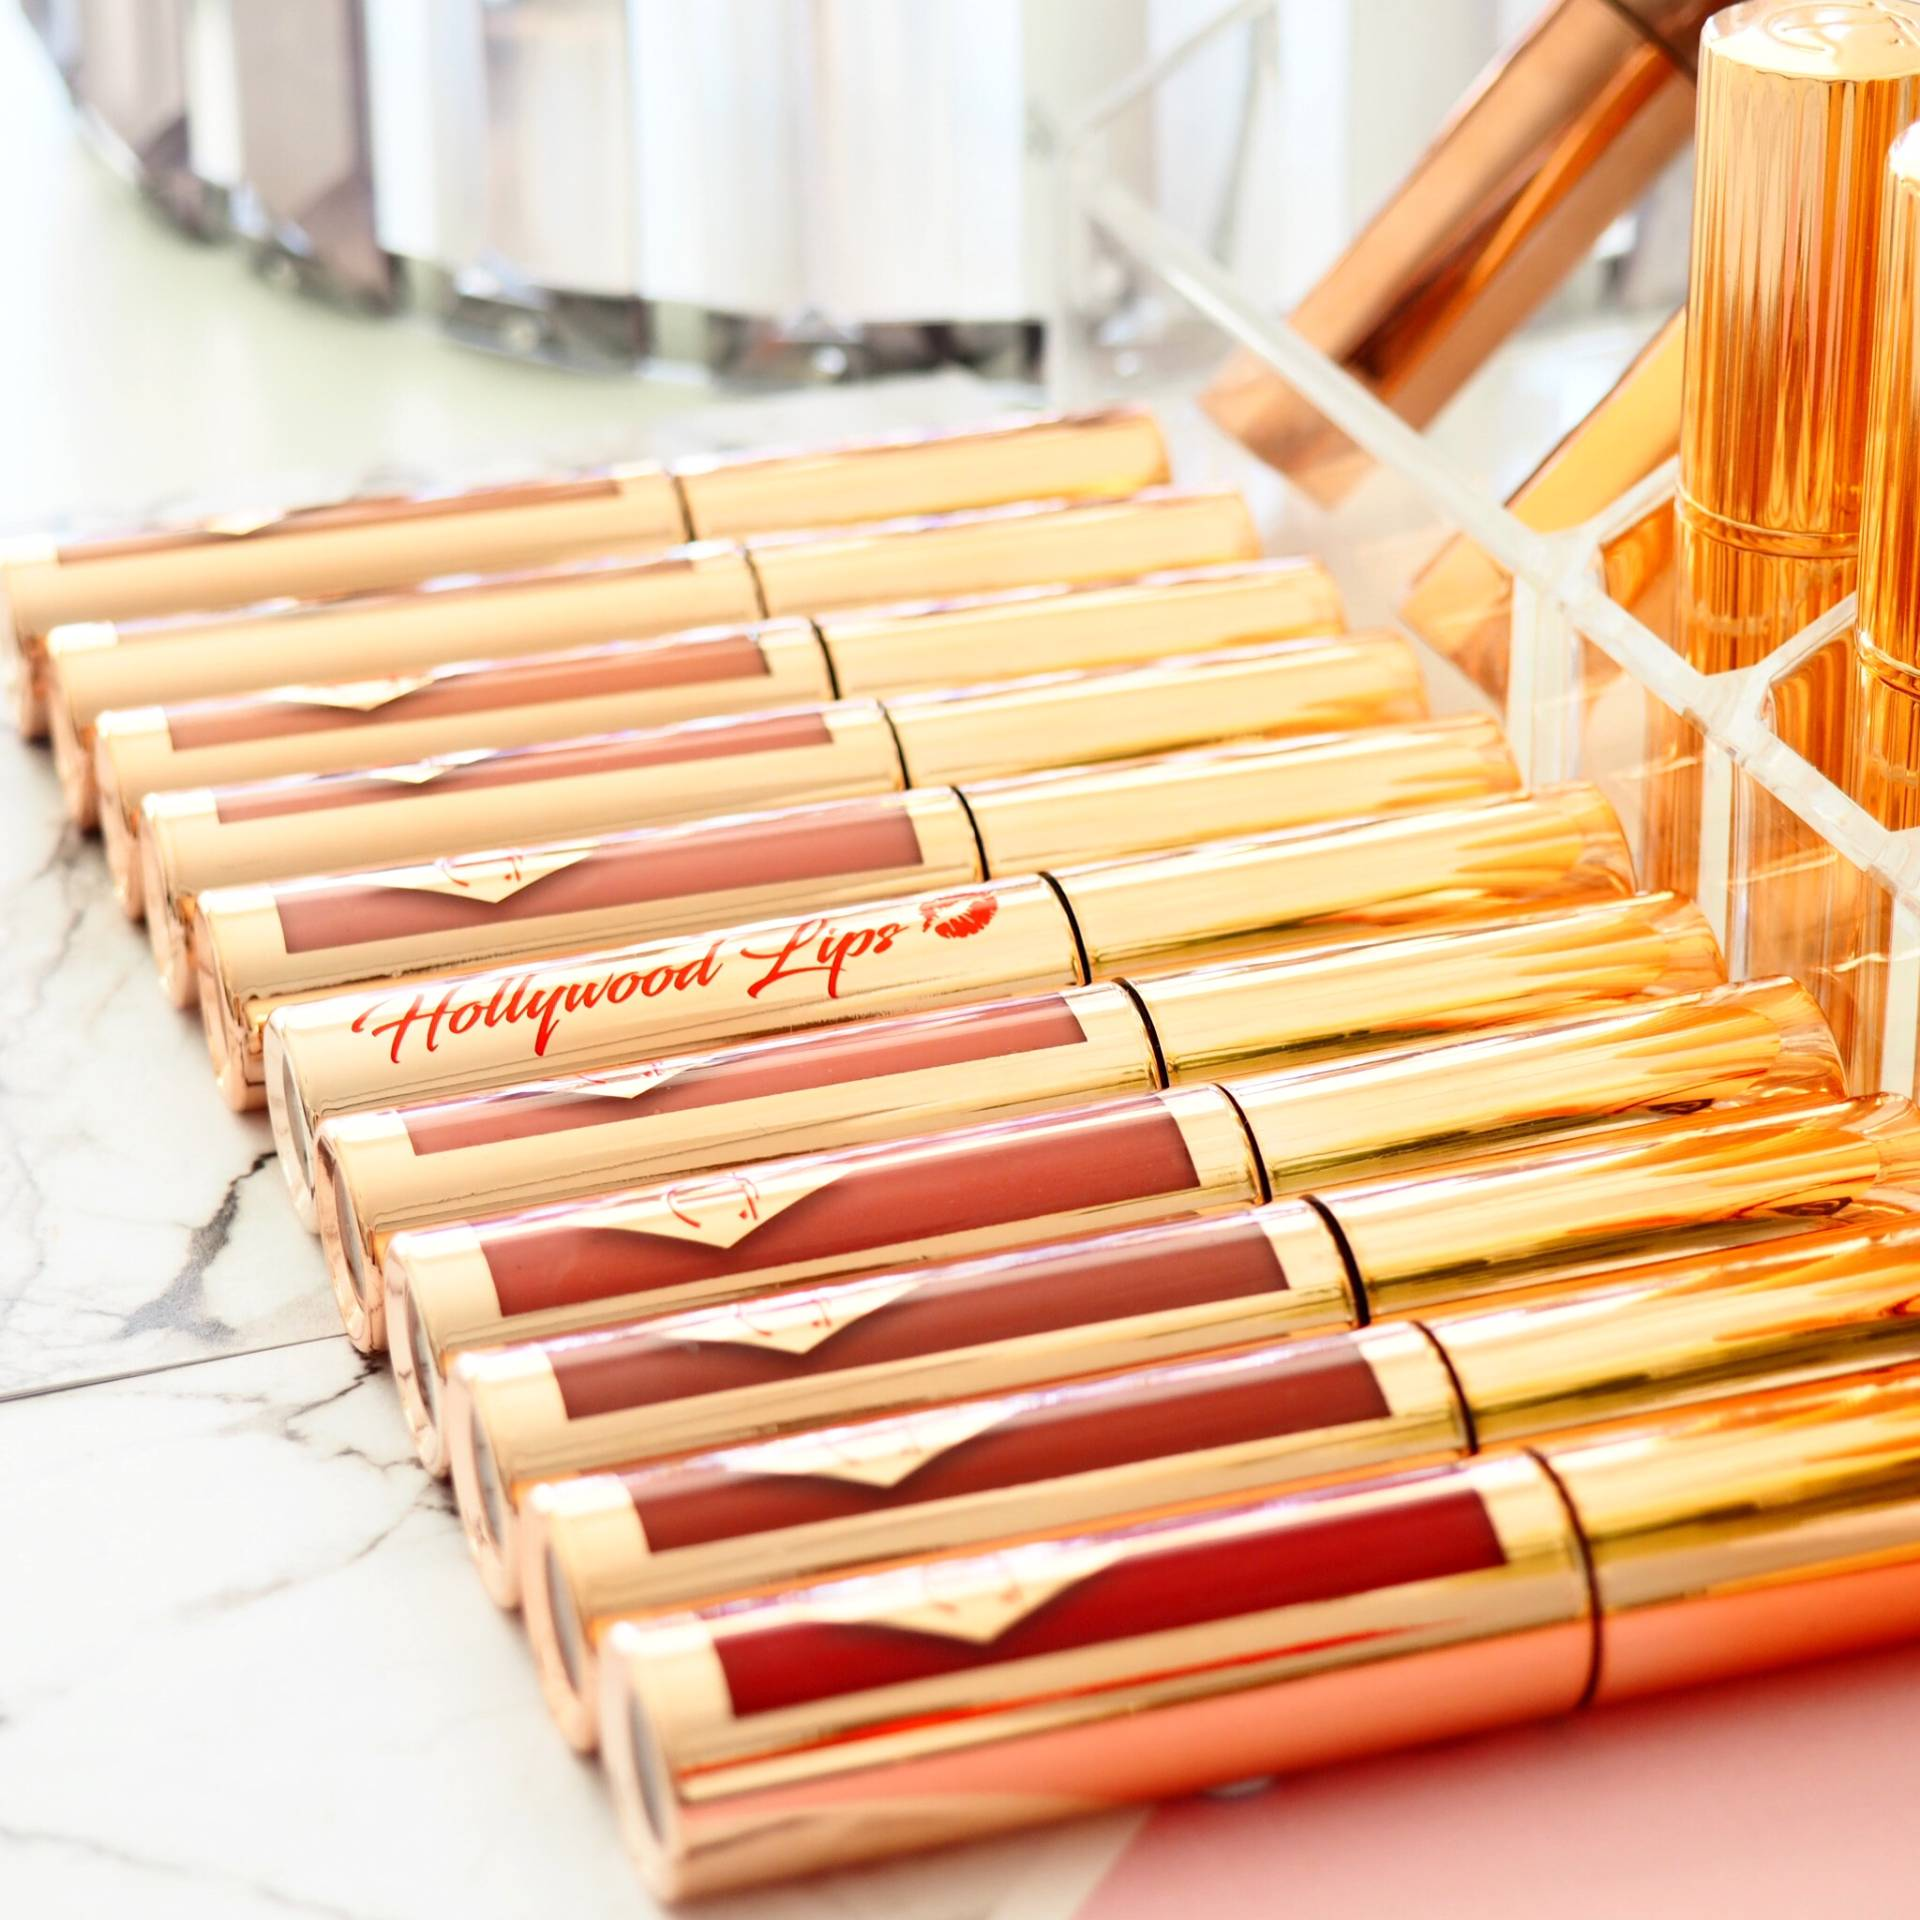 Charlotte Tilbury Hollywood Lips Collection with Swatches